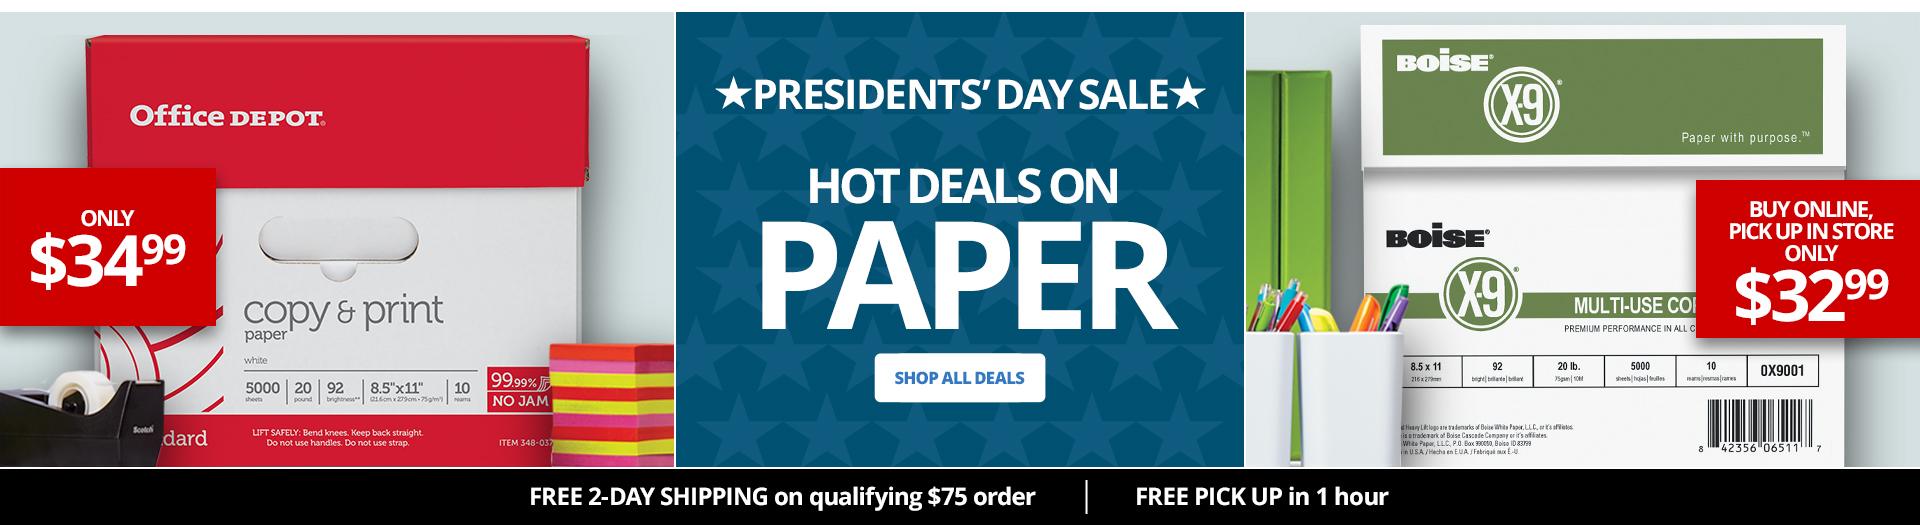 Hot Deals On Paper